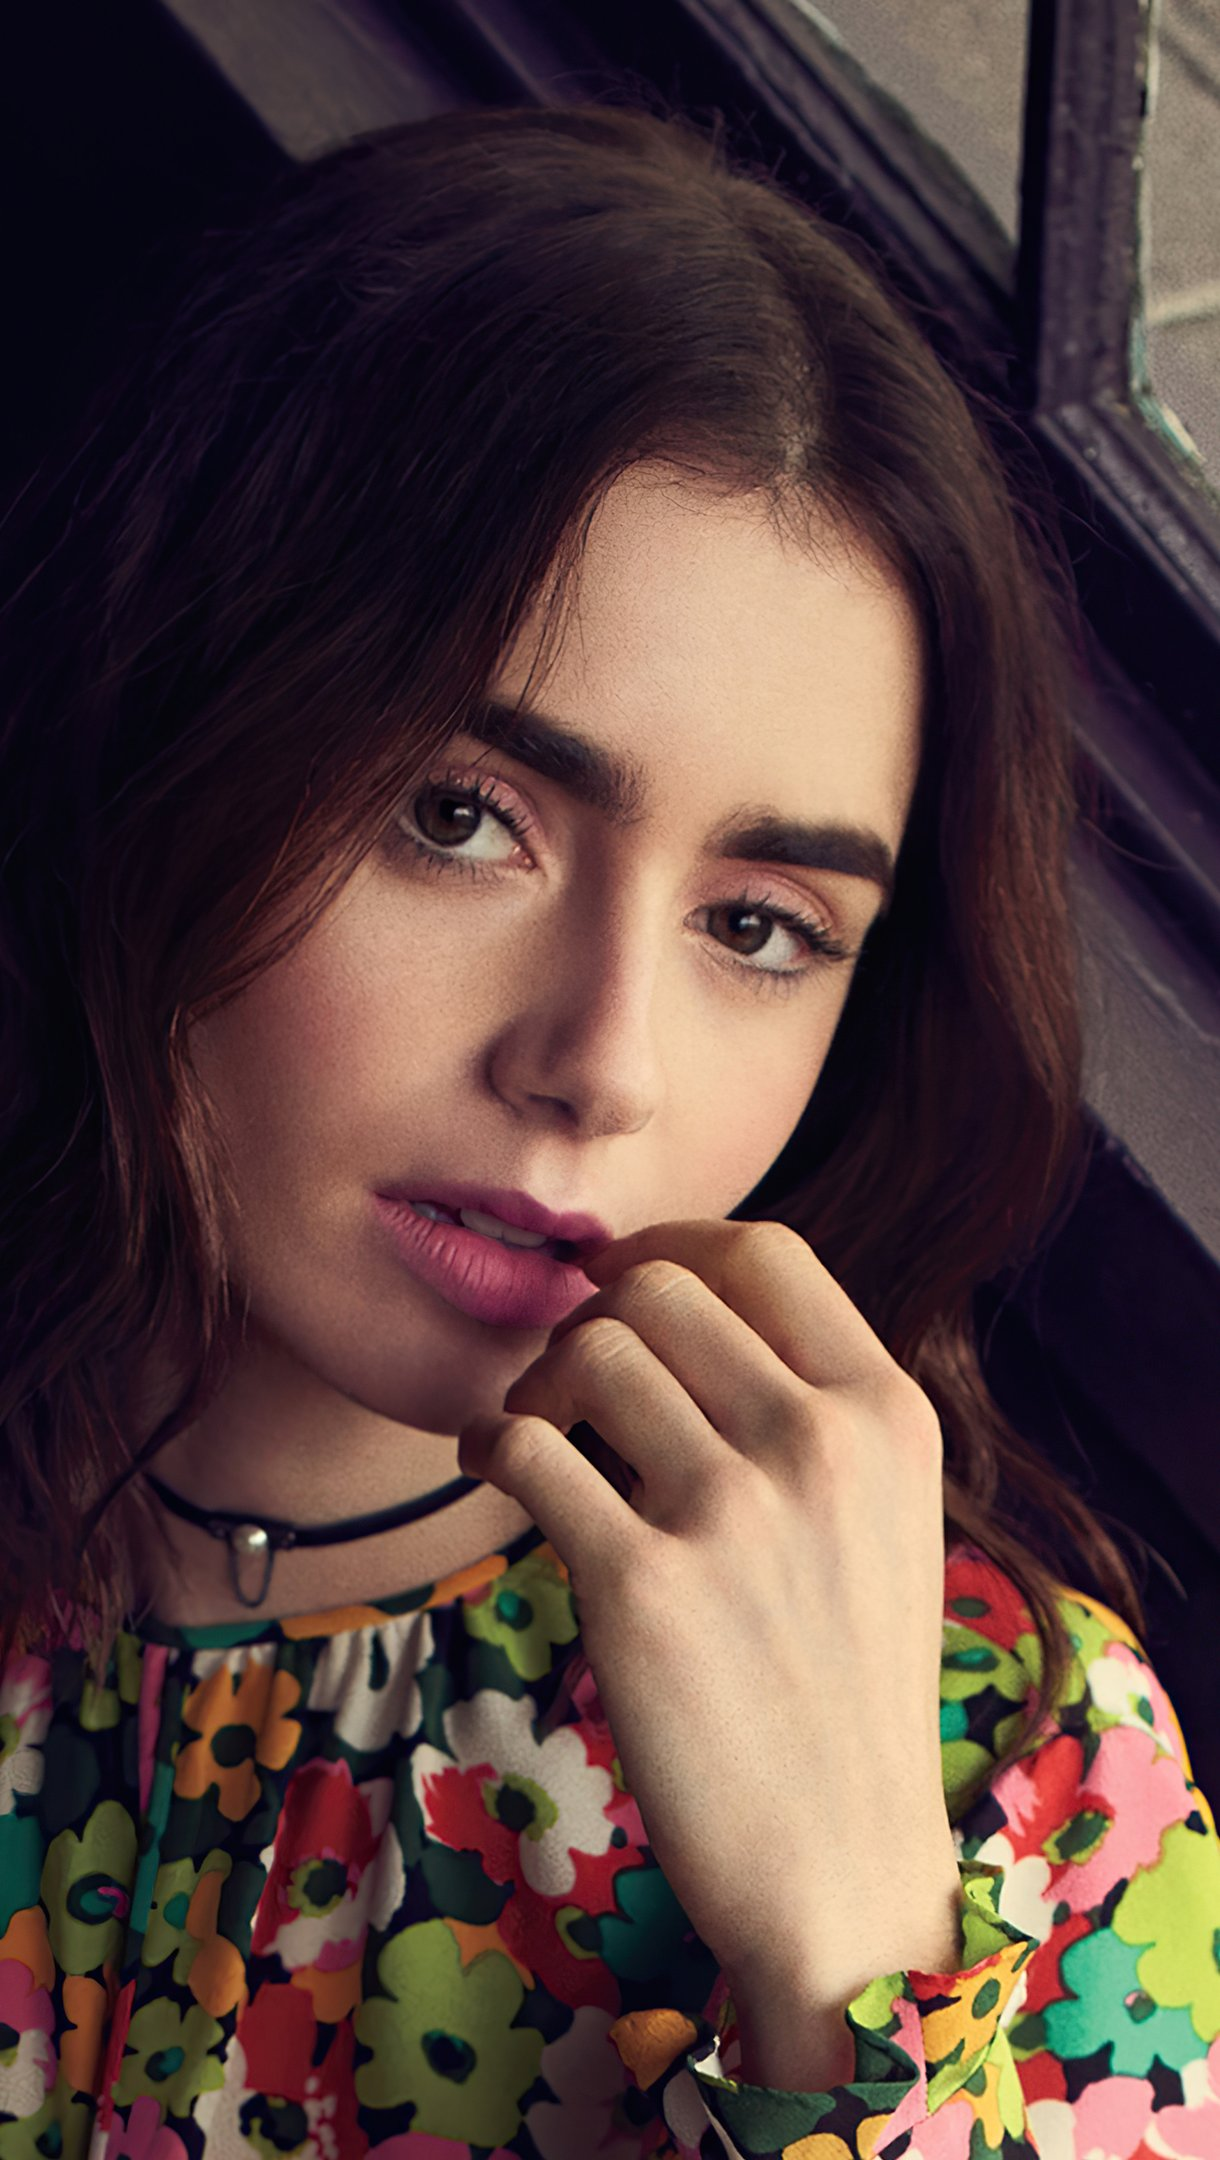 Wallpaper Lily Collins in room Vertical